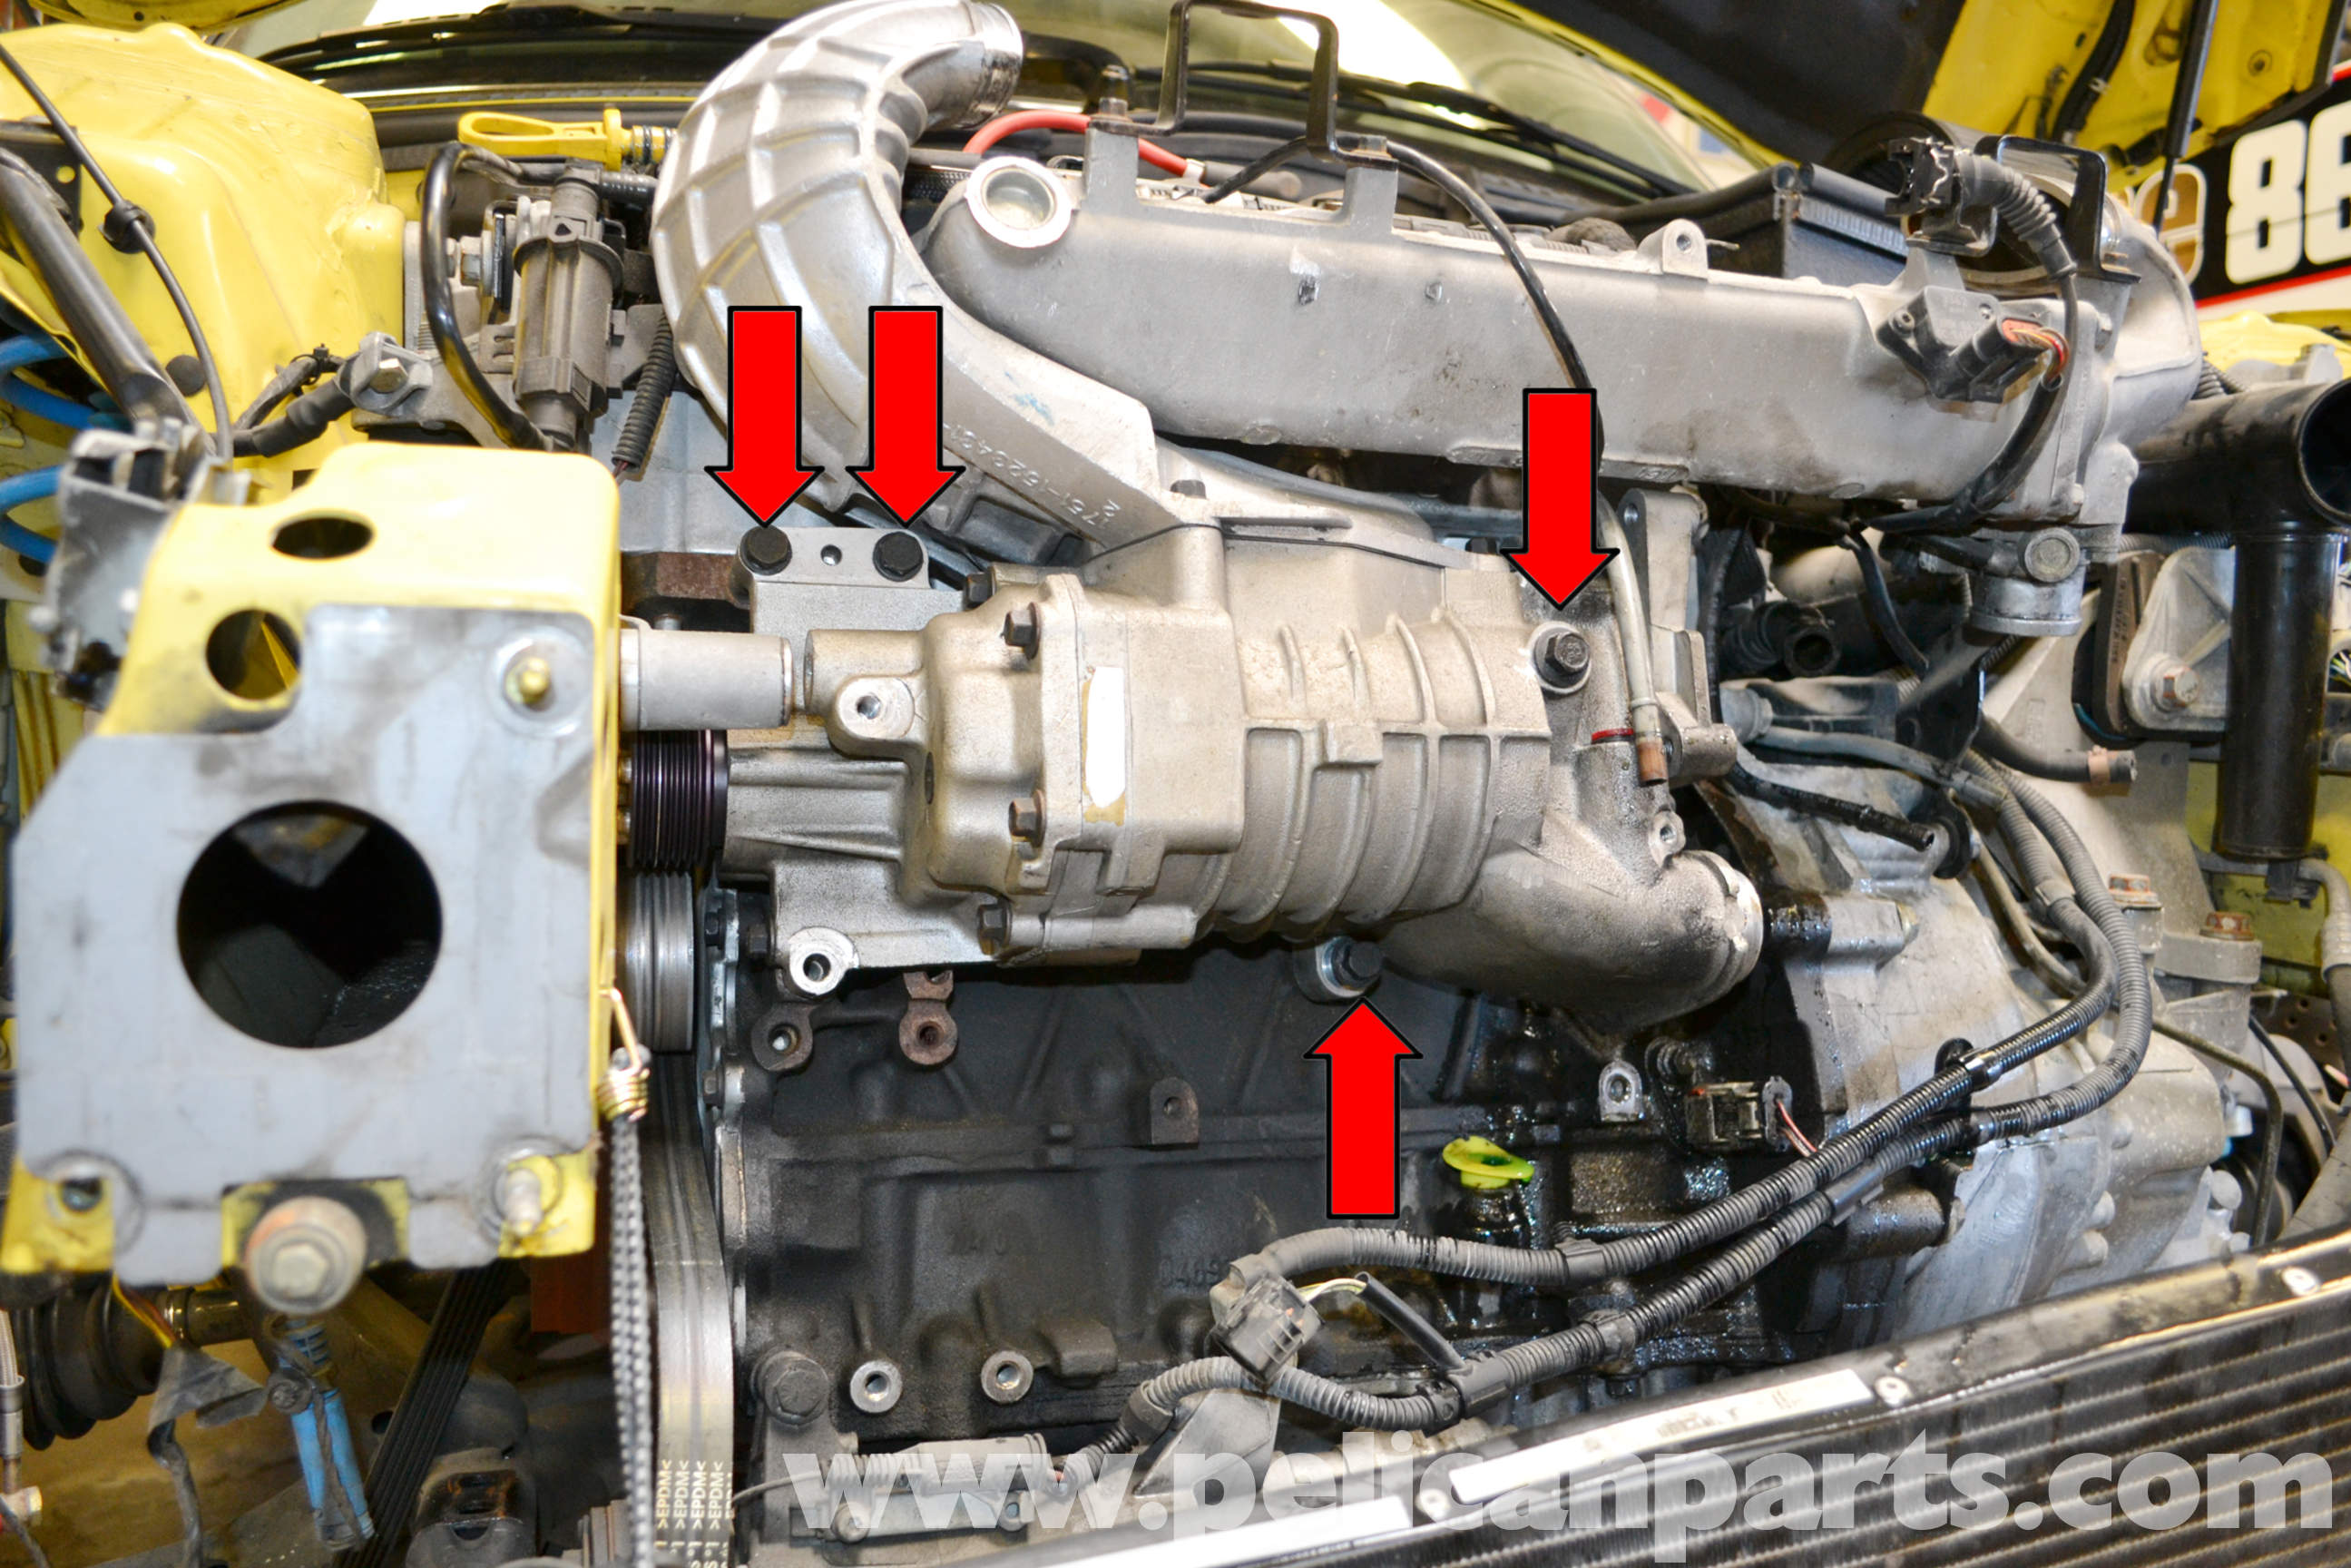 How To Make A Homemade Supercharger